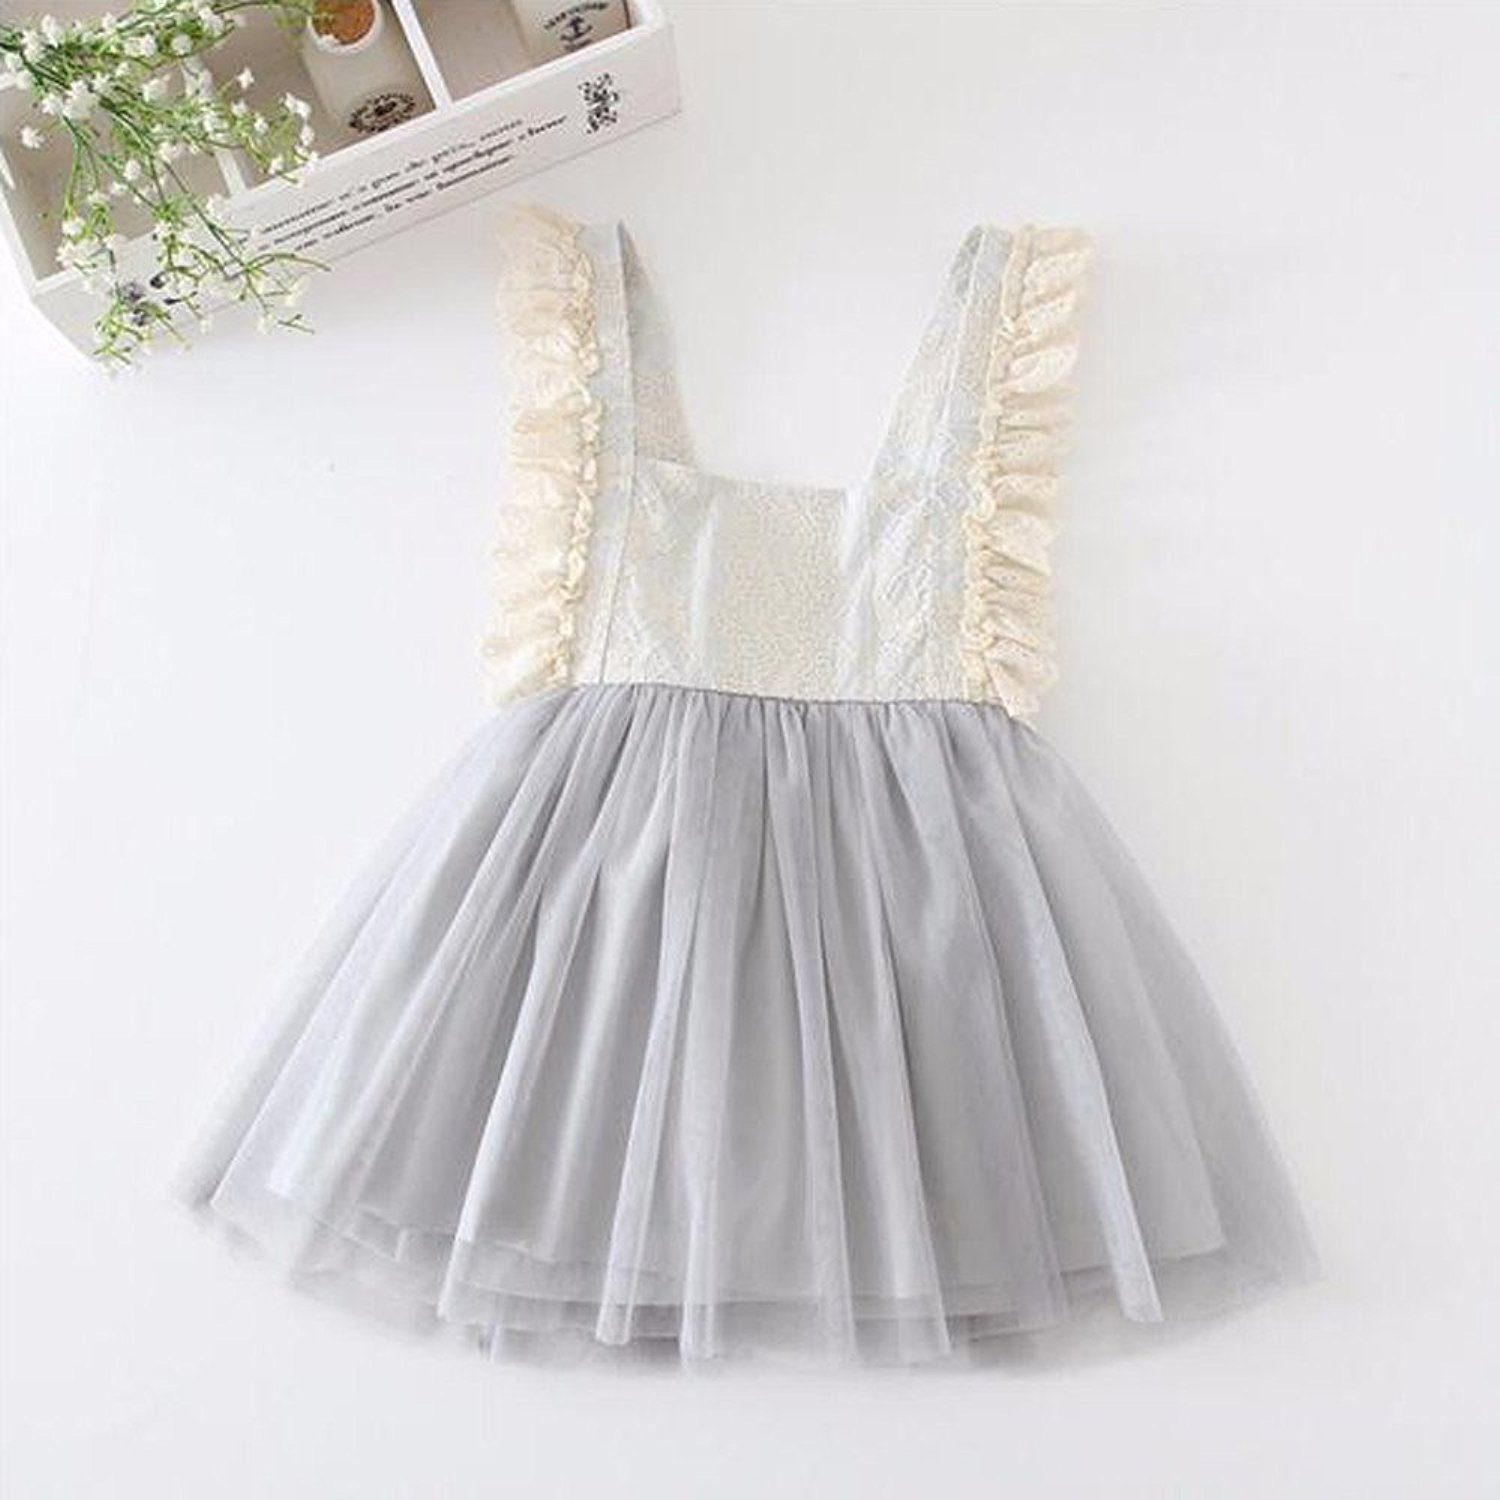 LOliSWan Little Girls Fairy Lace Princess Dress Ruffles Ballerina Tulle Tutu Toddlers Dress Up Outfits For Wedding Party (Gray, 3T) by LOliSWan (Image #3)